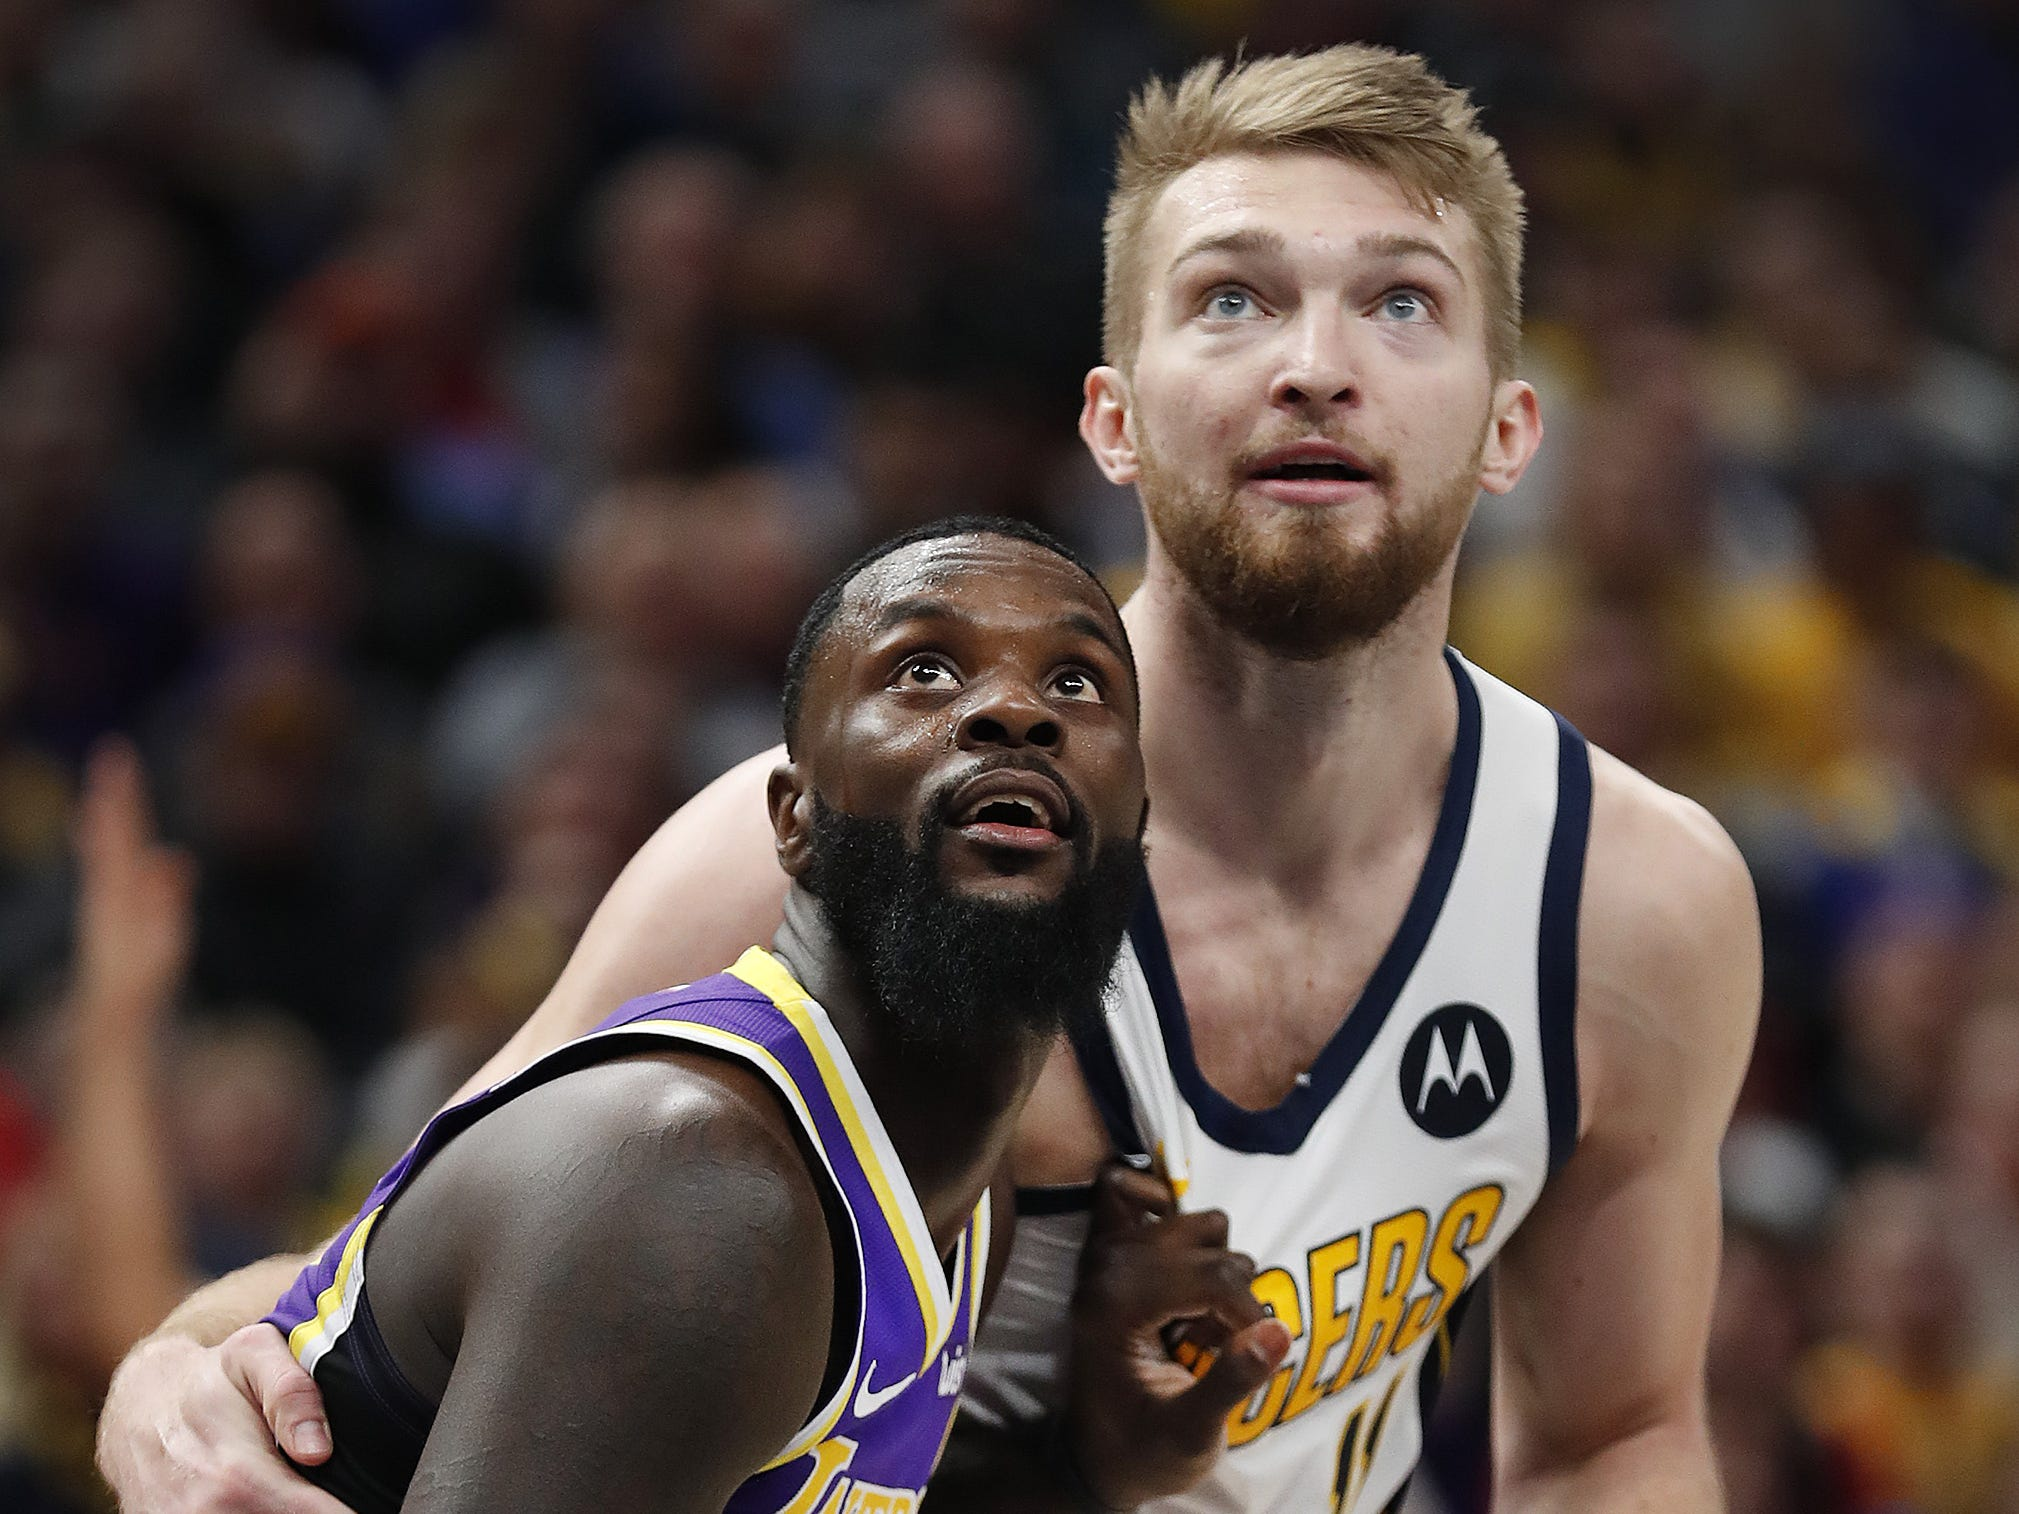 Indiana Pacers forward Domantas Sabonis (11) and Los Angeles Lakers guard Lance Stephenson (6) box out each other late in the second half of their game at Bankers Life Fieldhouse on Tuesday, Feb. 5, 2019.